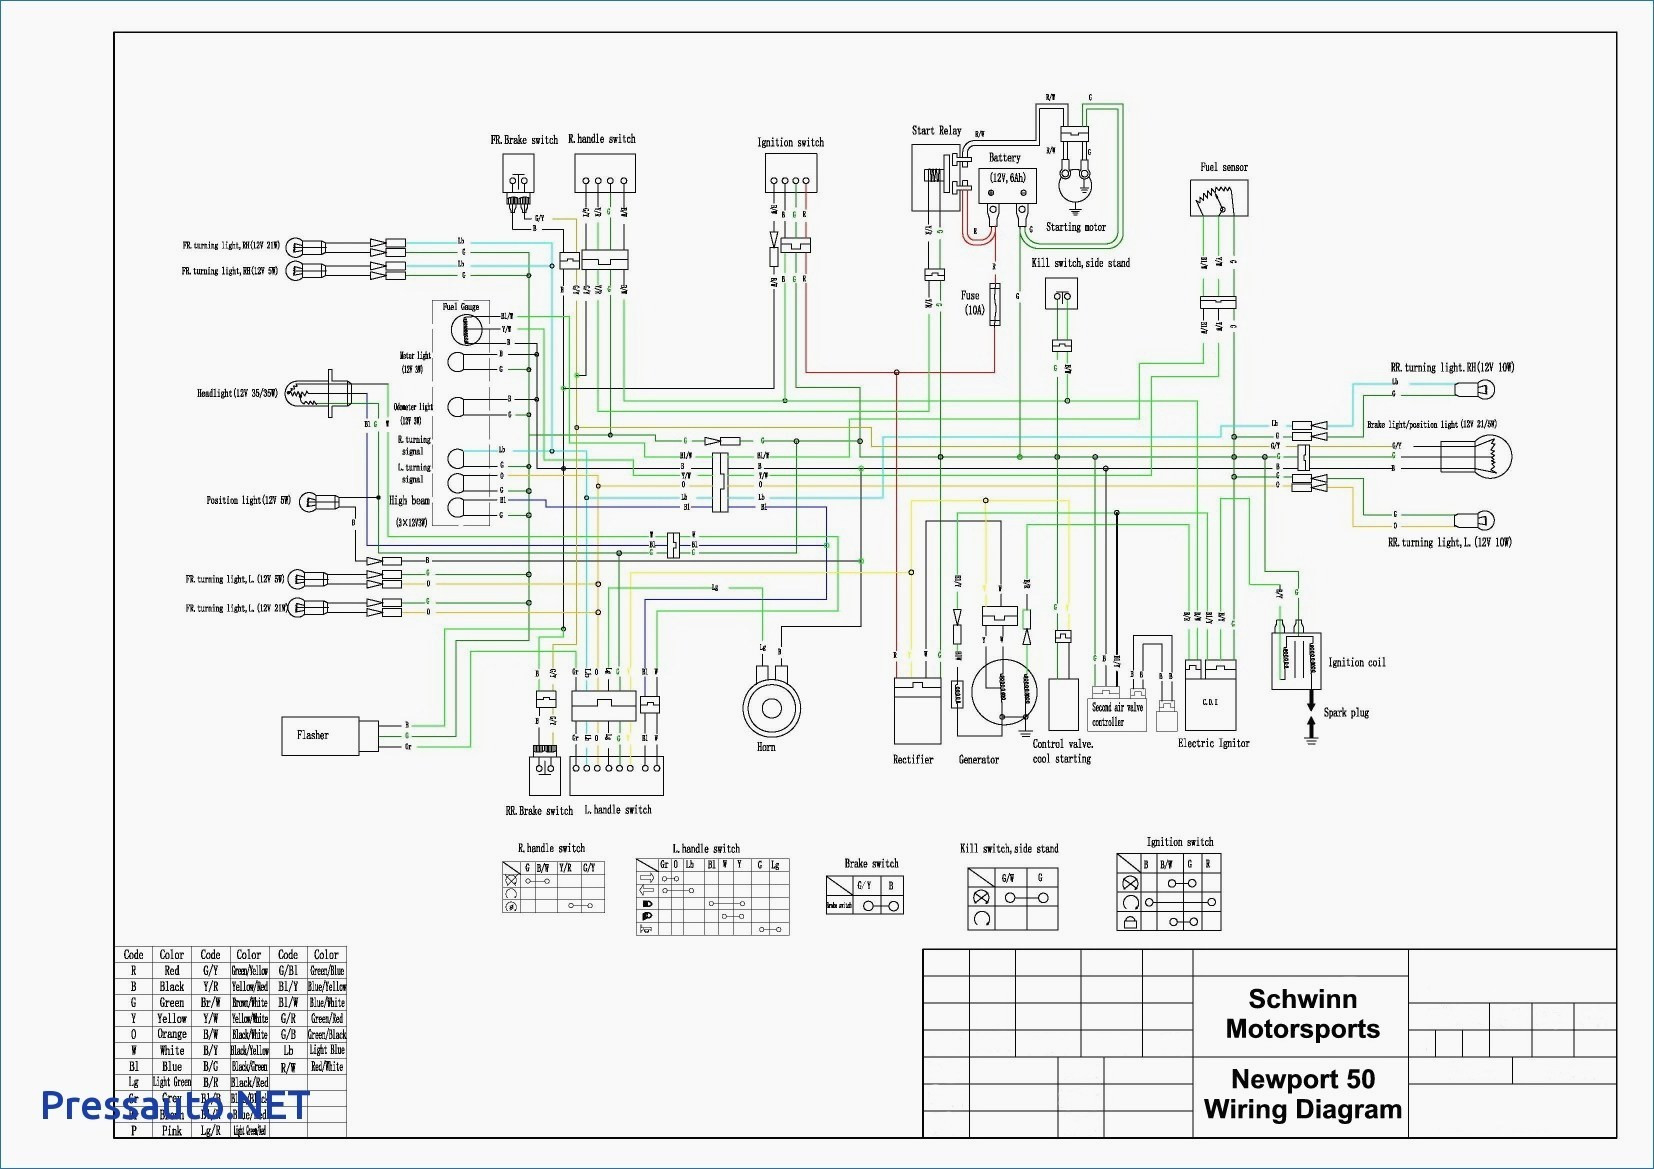 victory vegas wiring diagram | wiring diagram  wiring diagram - autoscout24